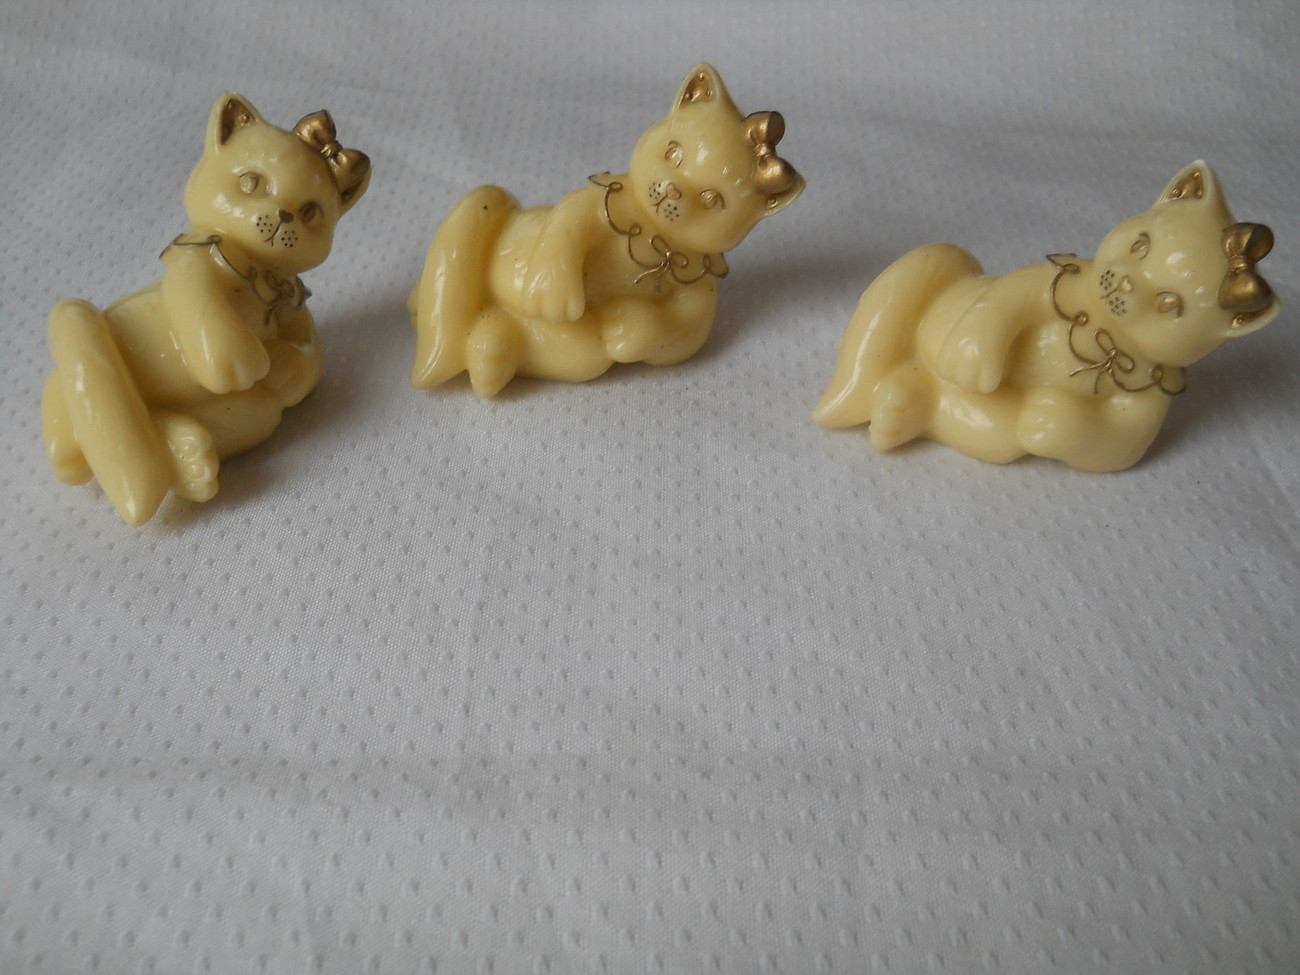 Set of 3 Calico Kittens Gold Trimmed Ivory Colored 1998 Pricilla Hillman Enesco